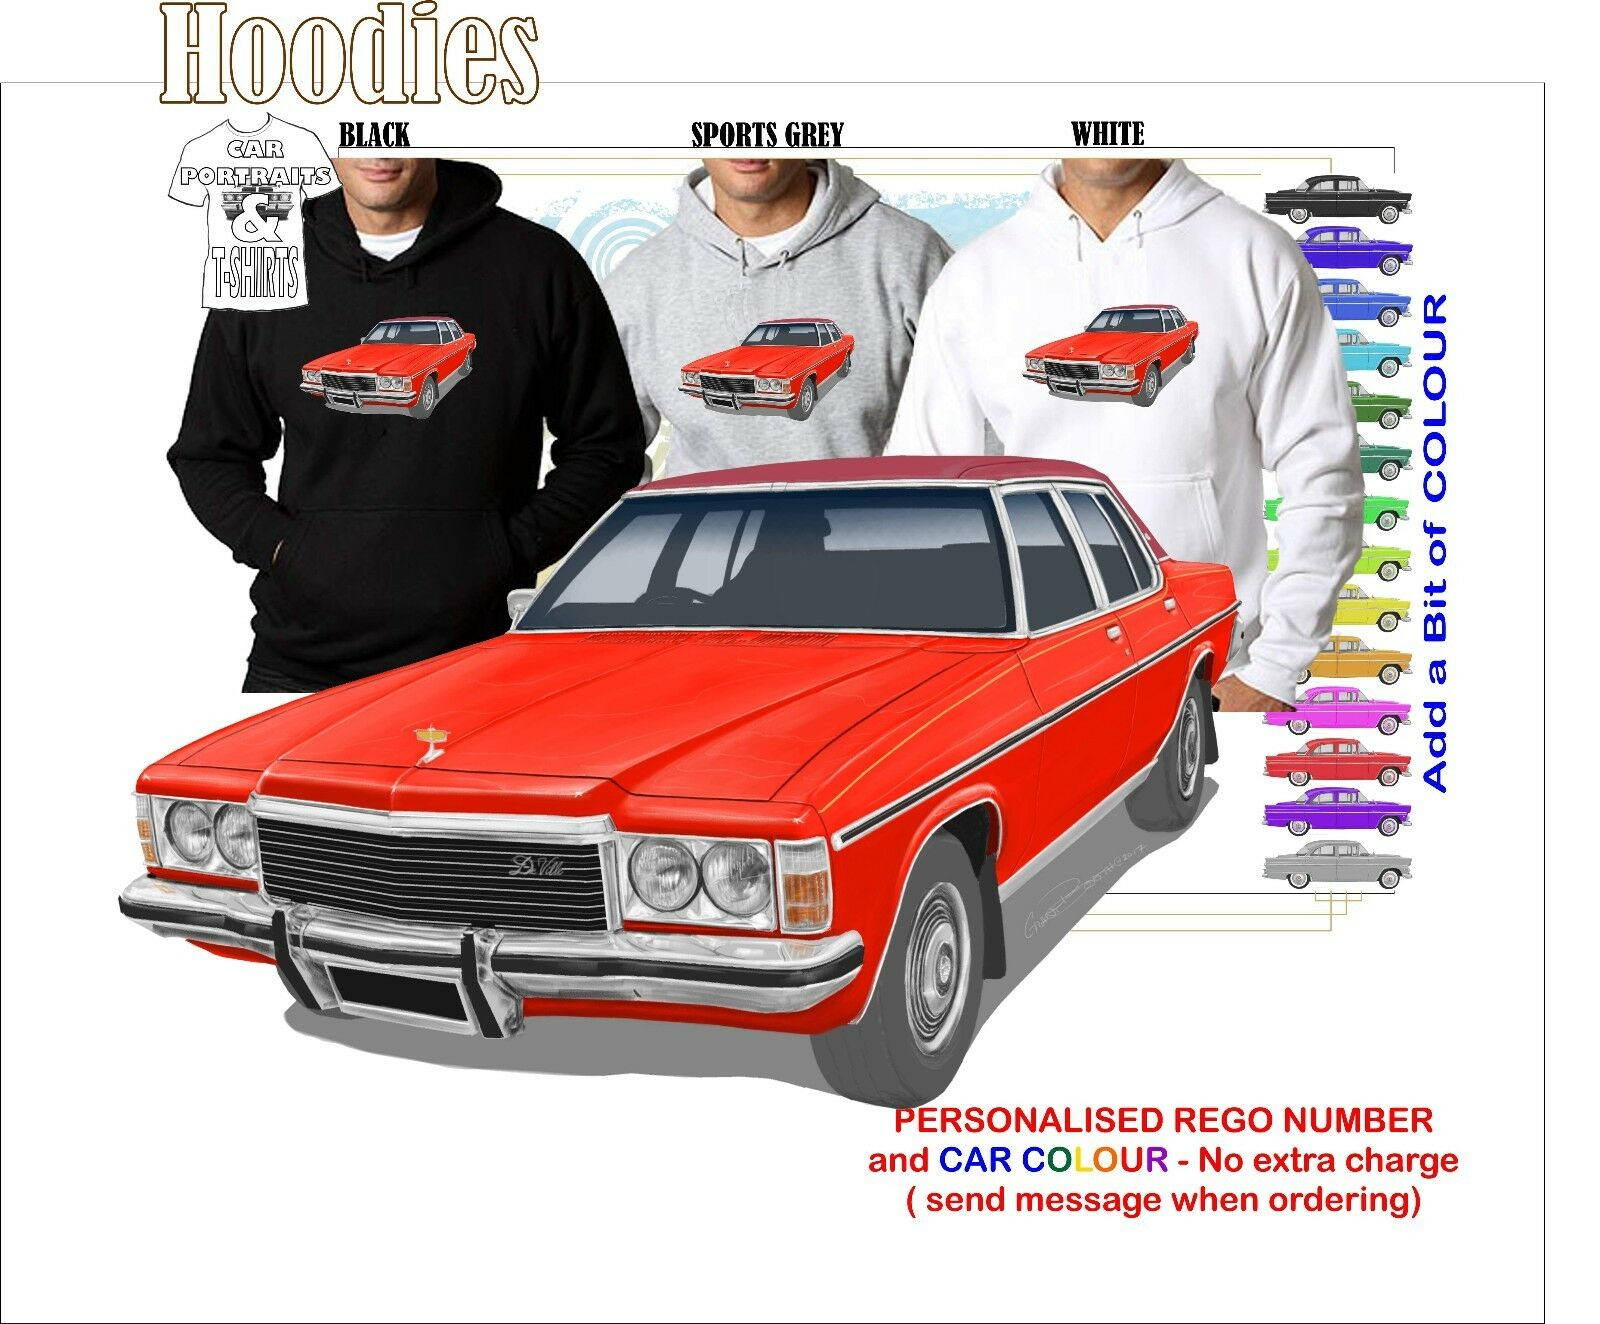 77-80 HOLDEN STATESMAN HOODIE ILLUSTRATED CLASSIC RETRO MUSCLE SPORTS CAR